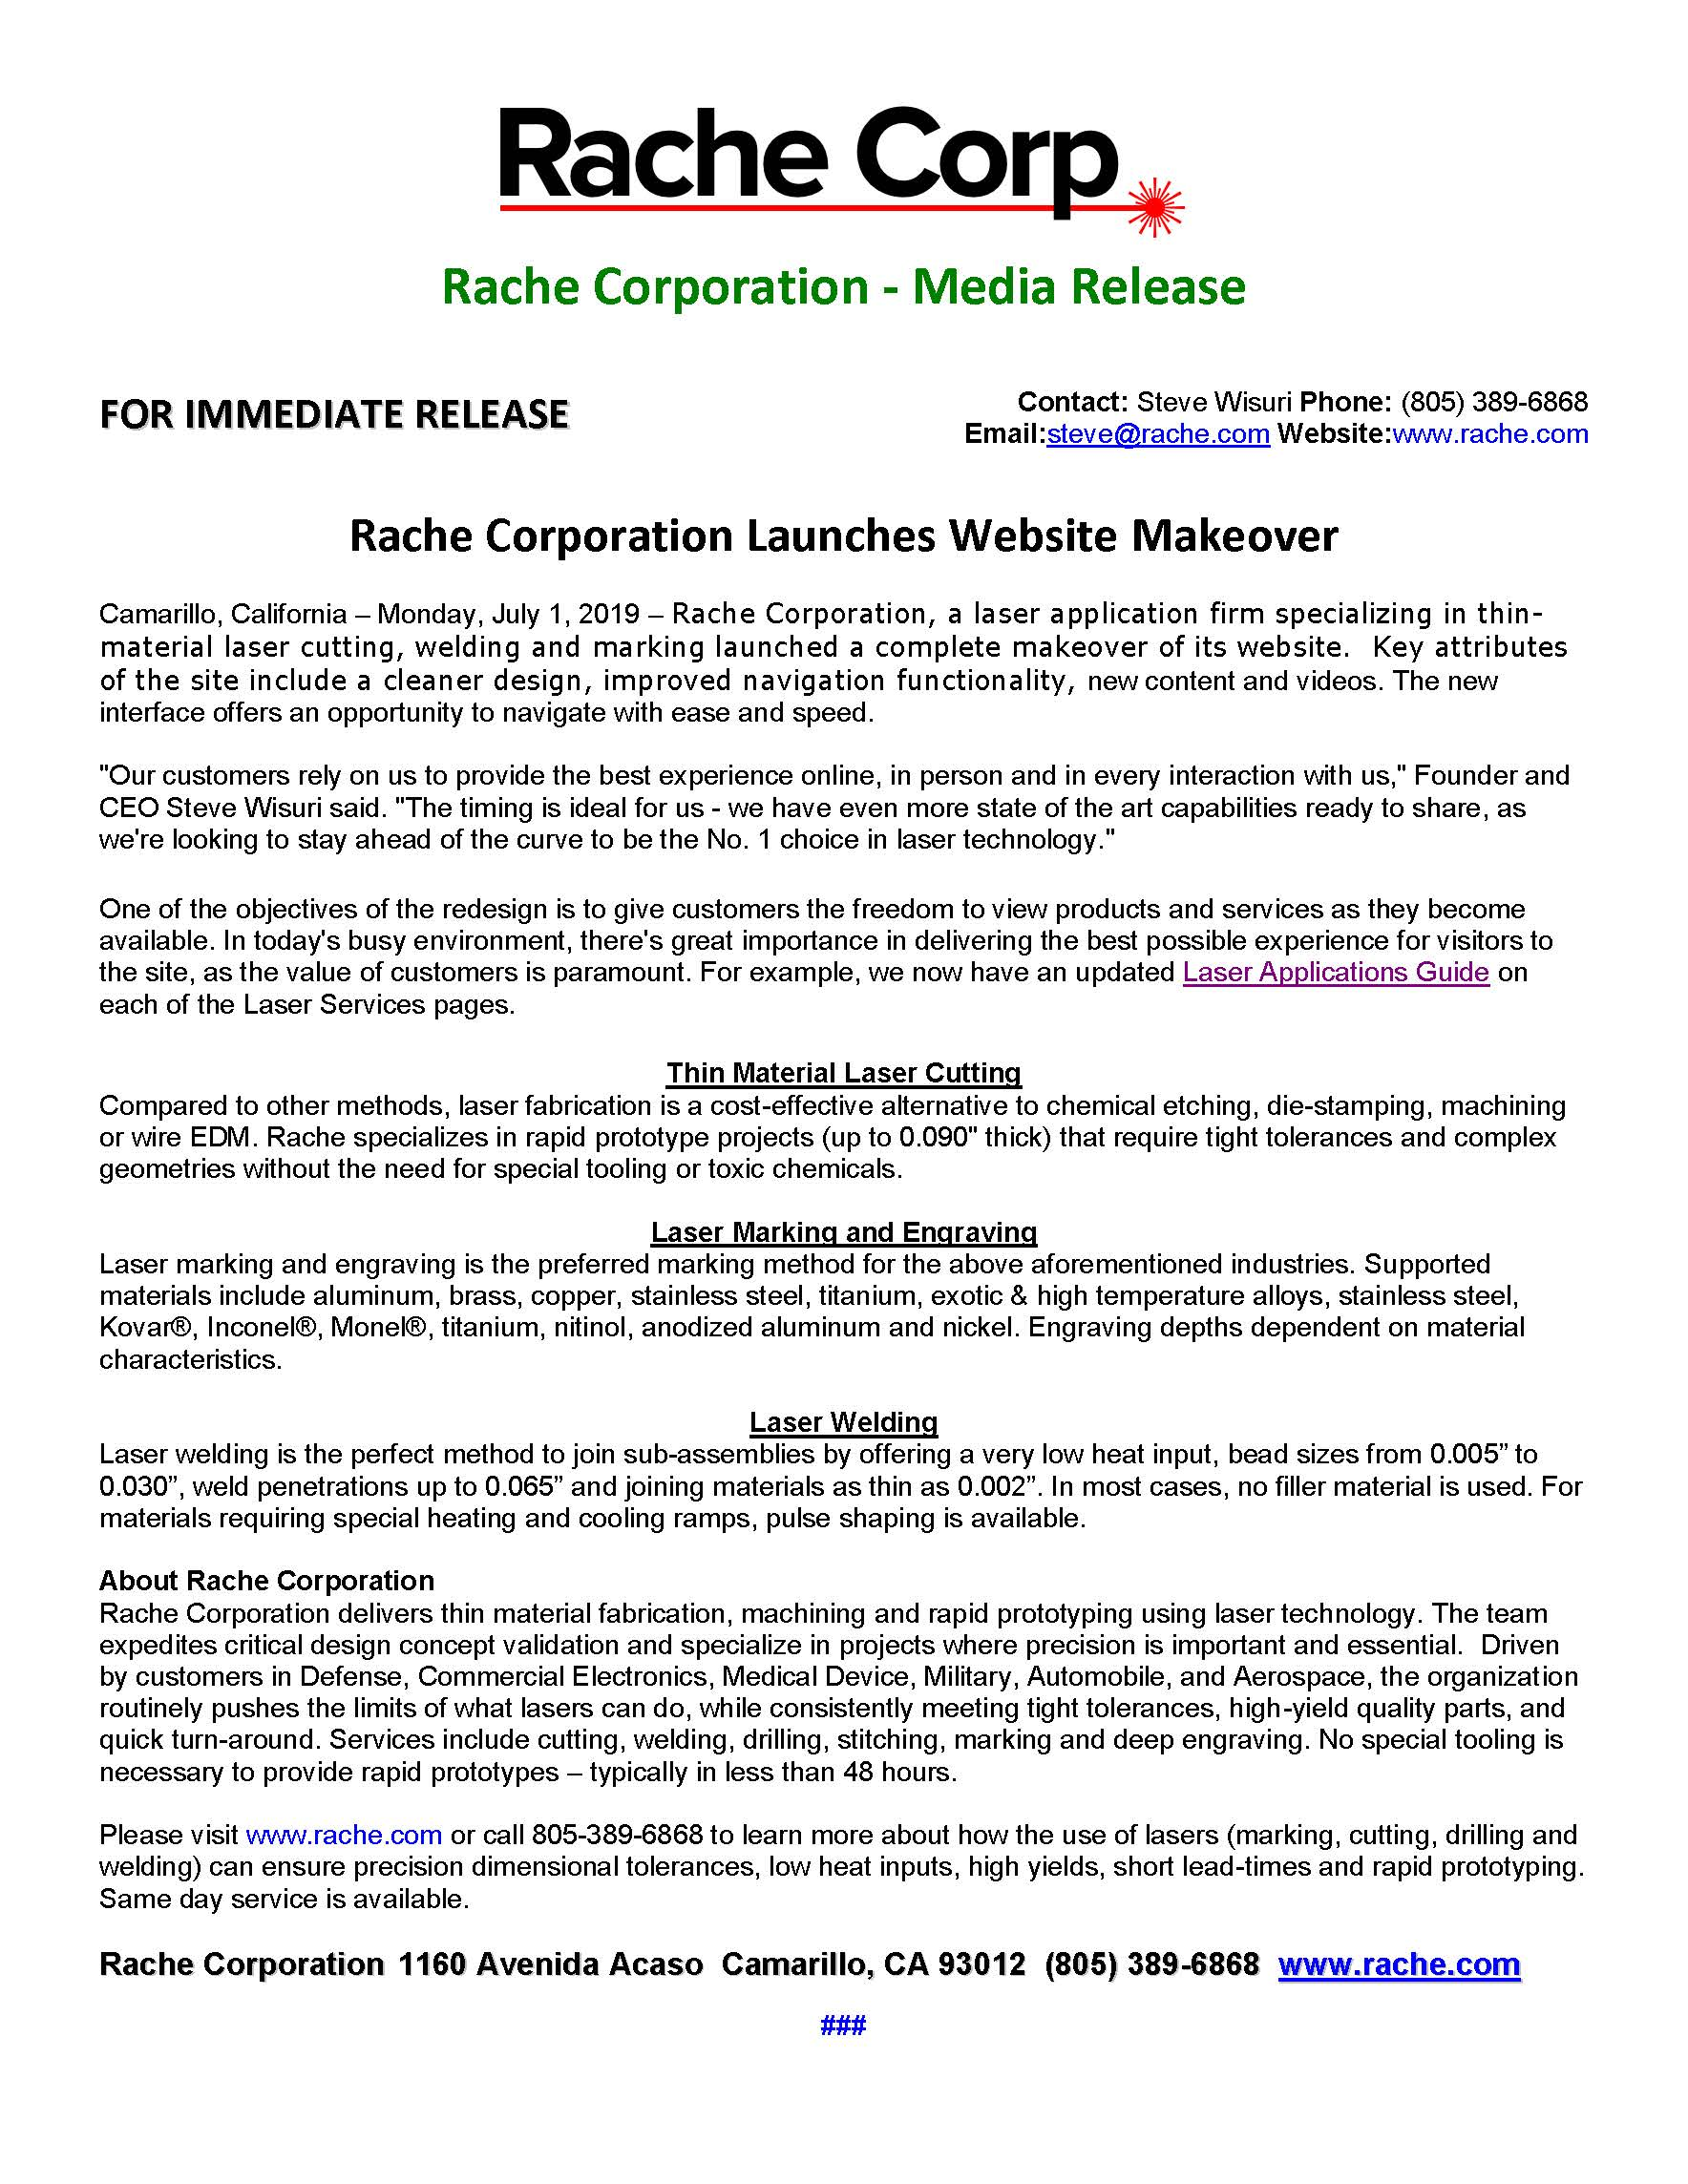 RachePressRelease_7-1-2019_WebsiteMakeover_R5.jpg